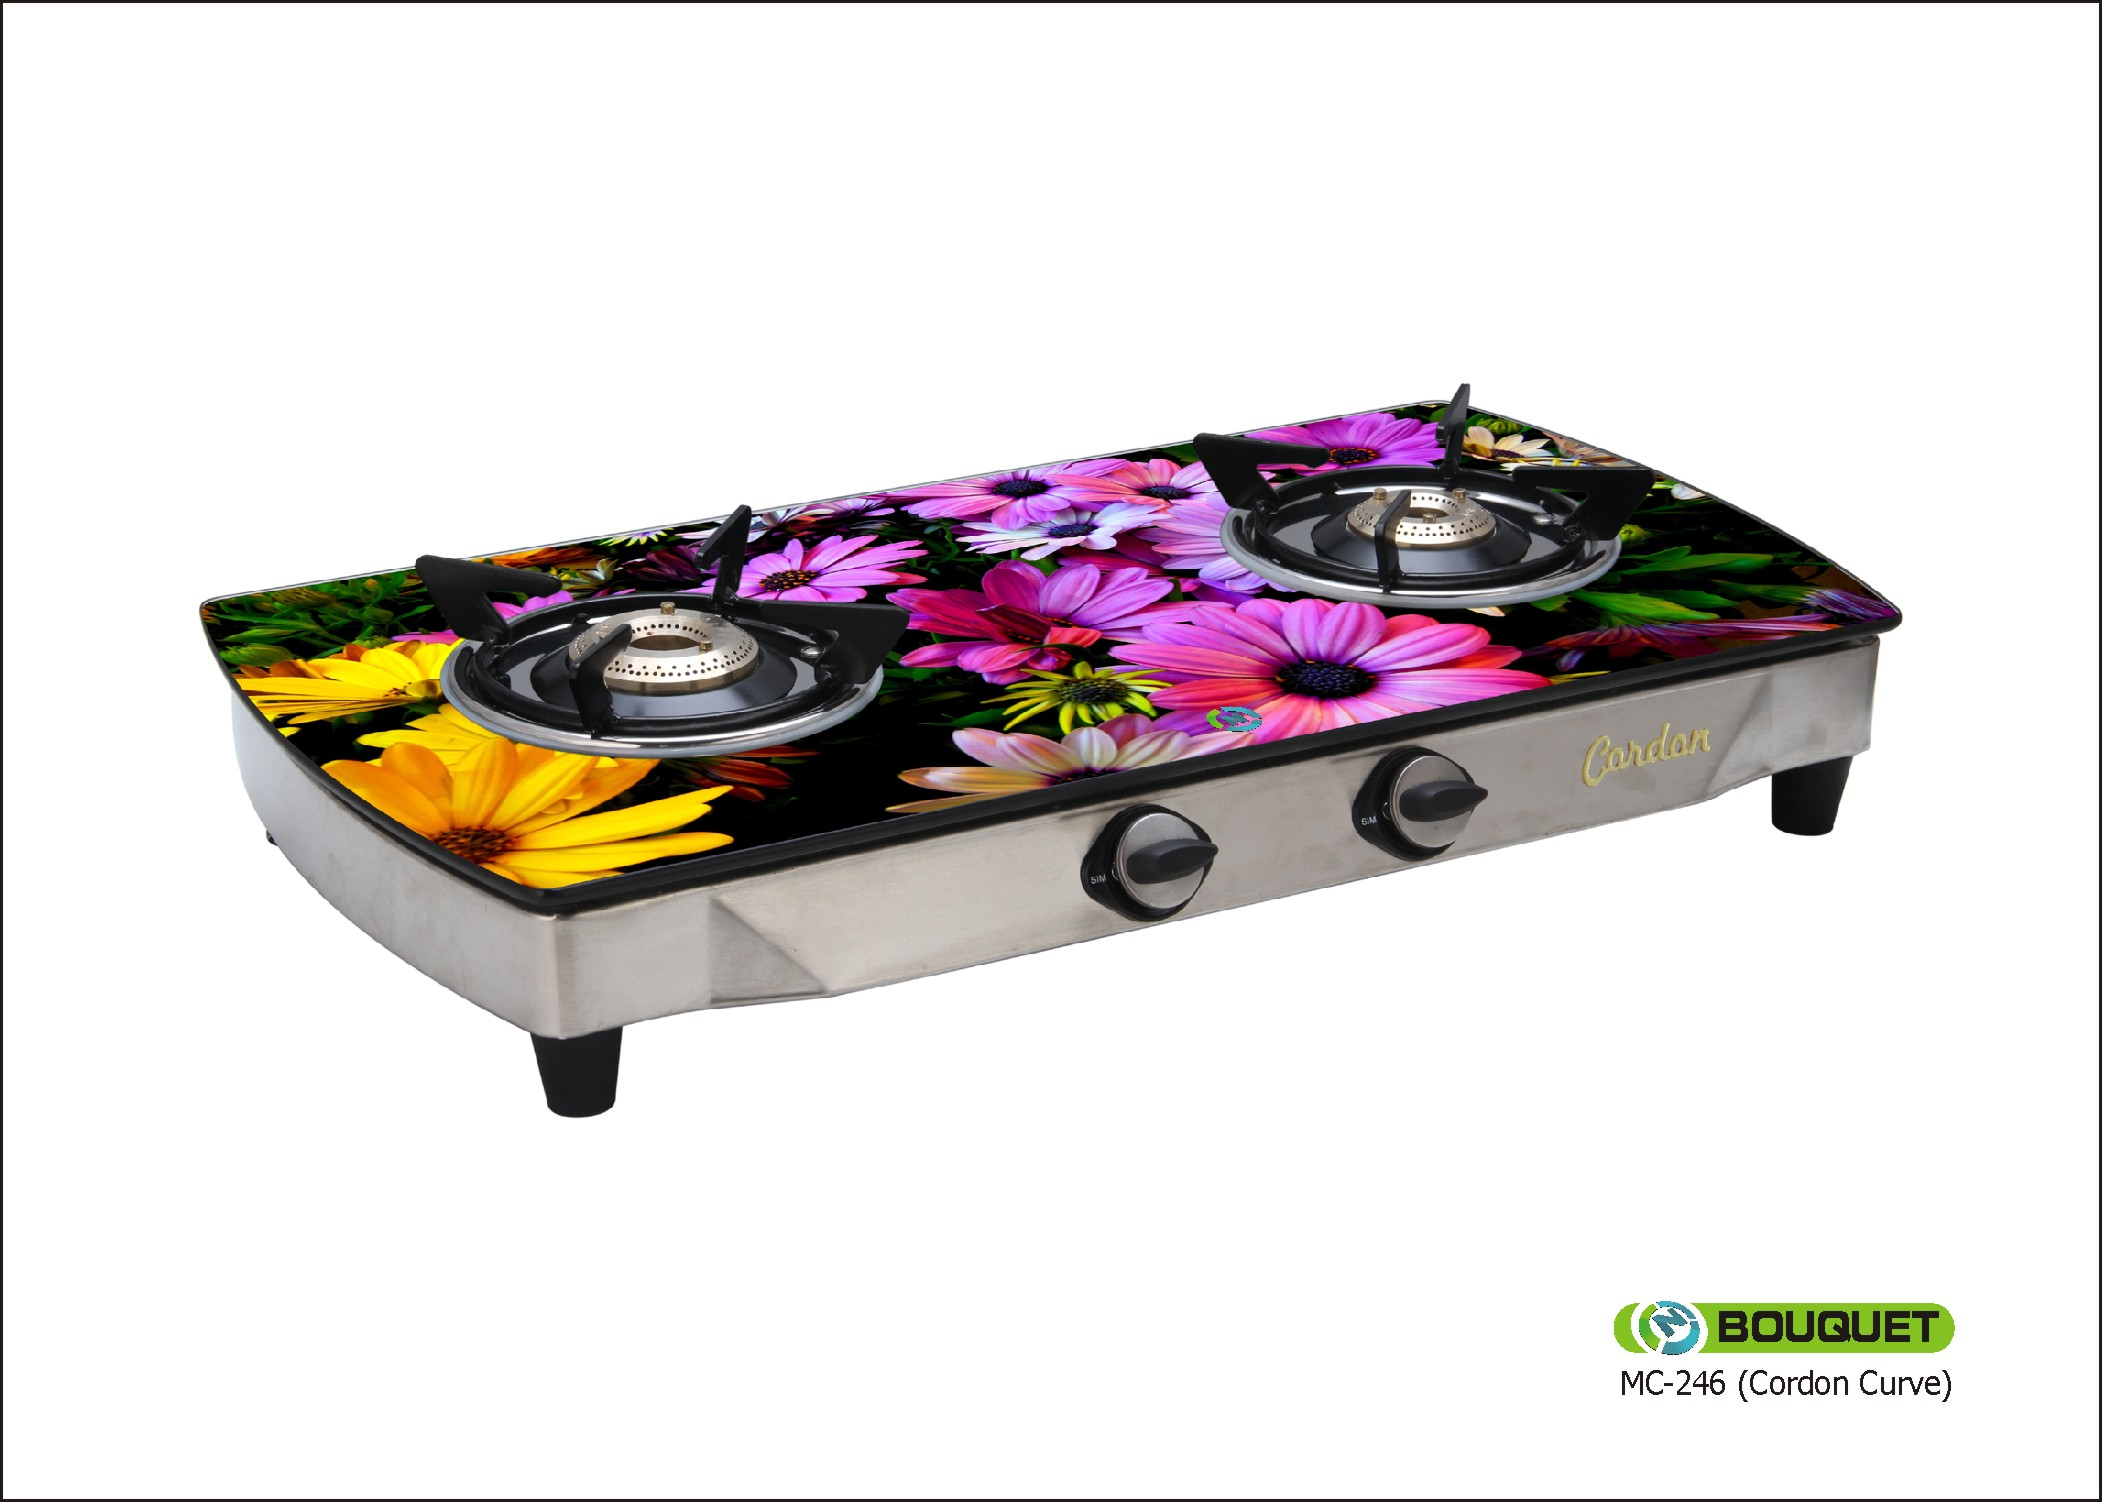 246 Bouquet 2 Burner Glass Top Gas Stove Fruitish Design: Buy Online